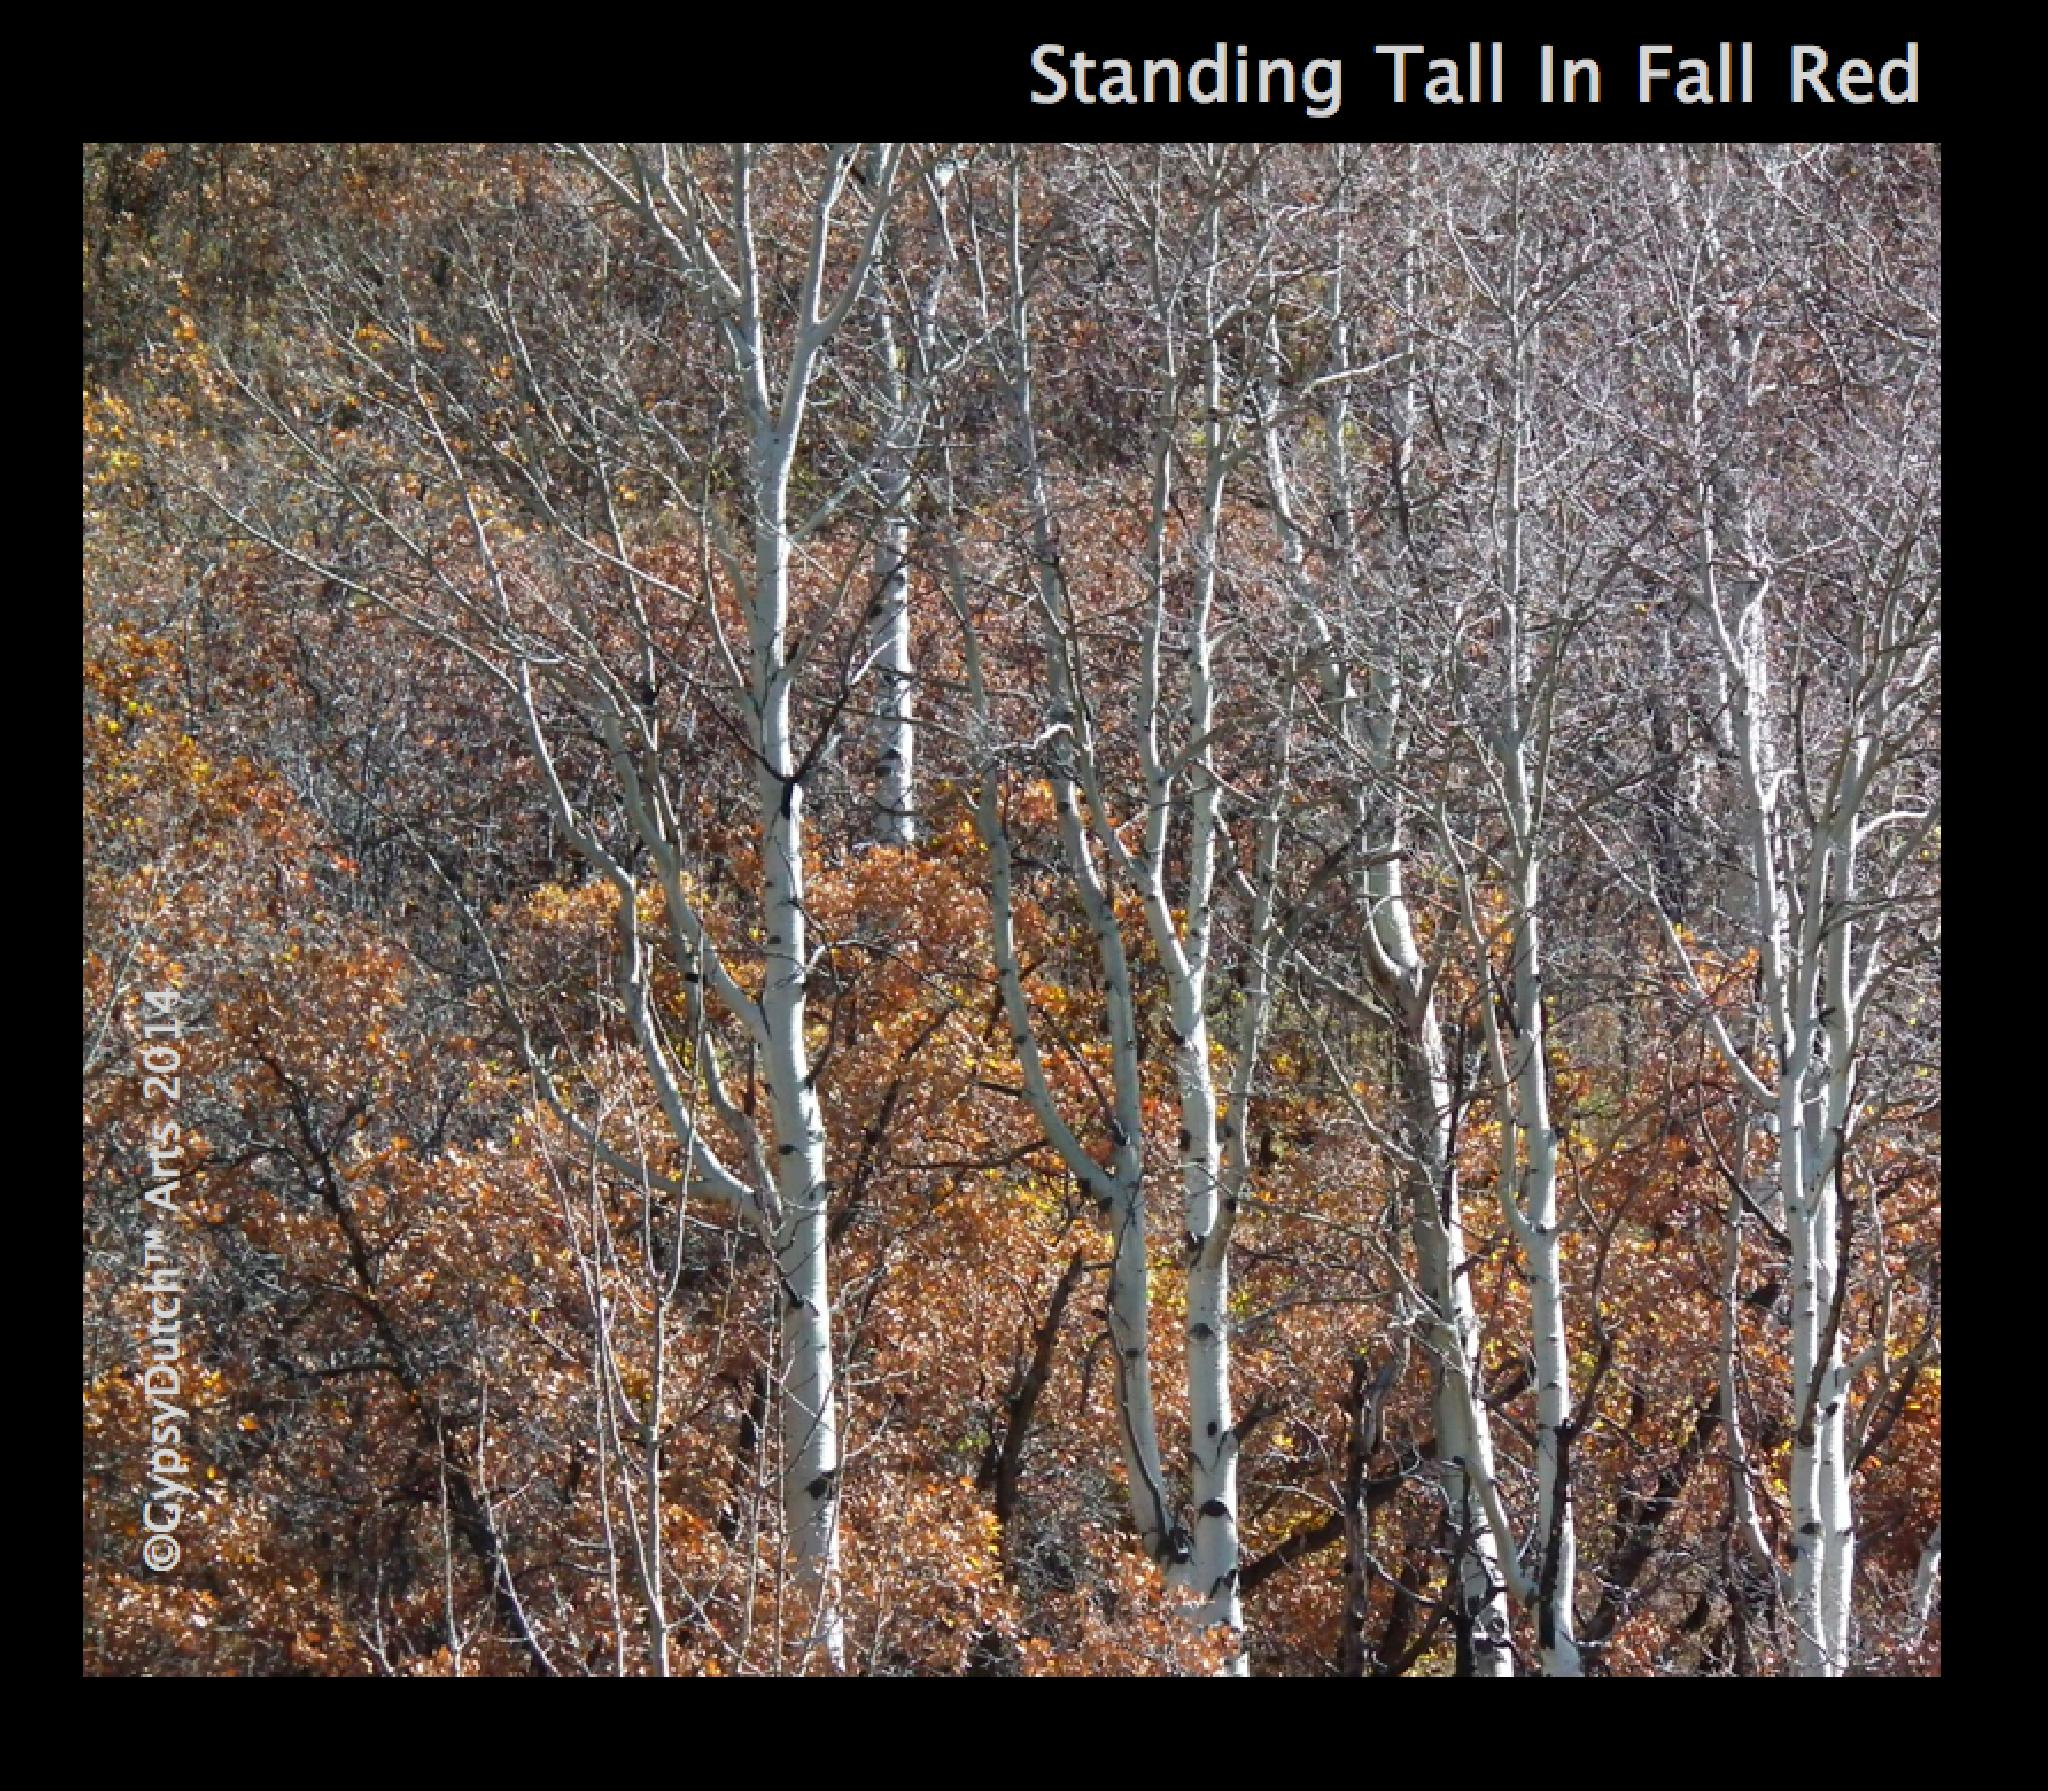 Standing Tall In The Red by GypsyDutch